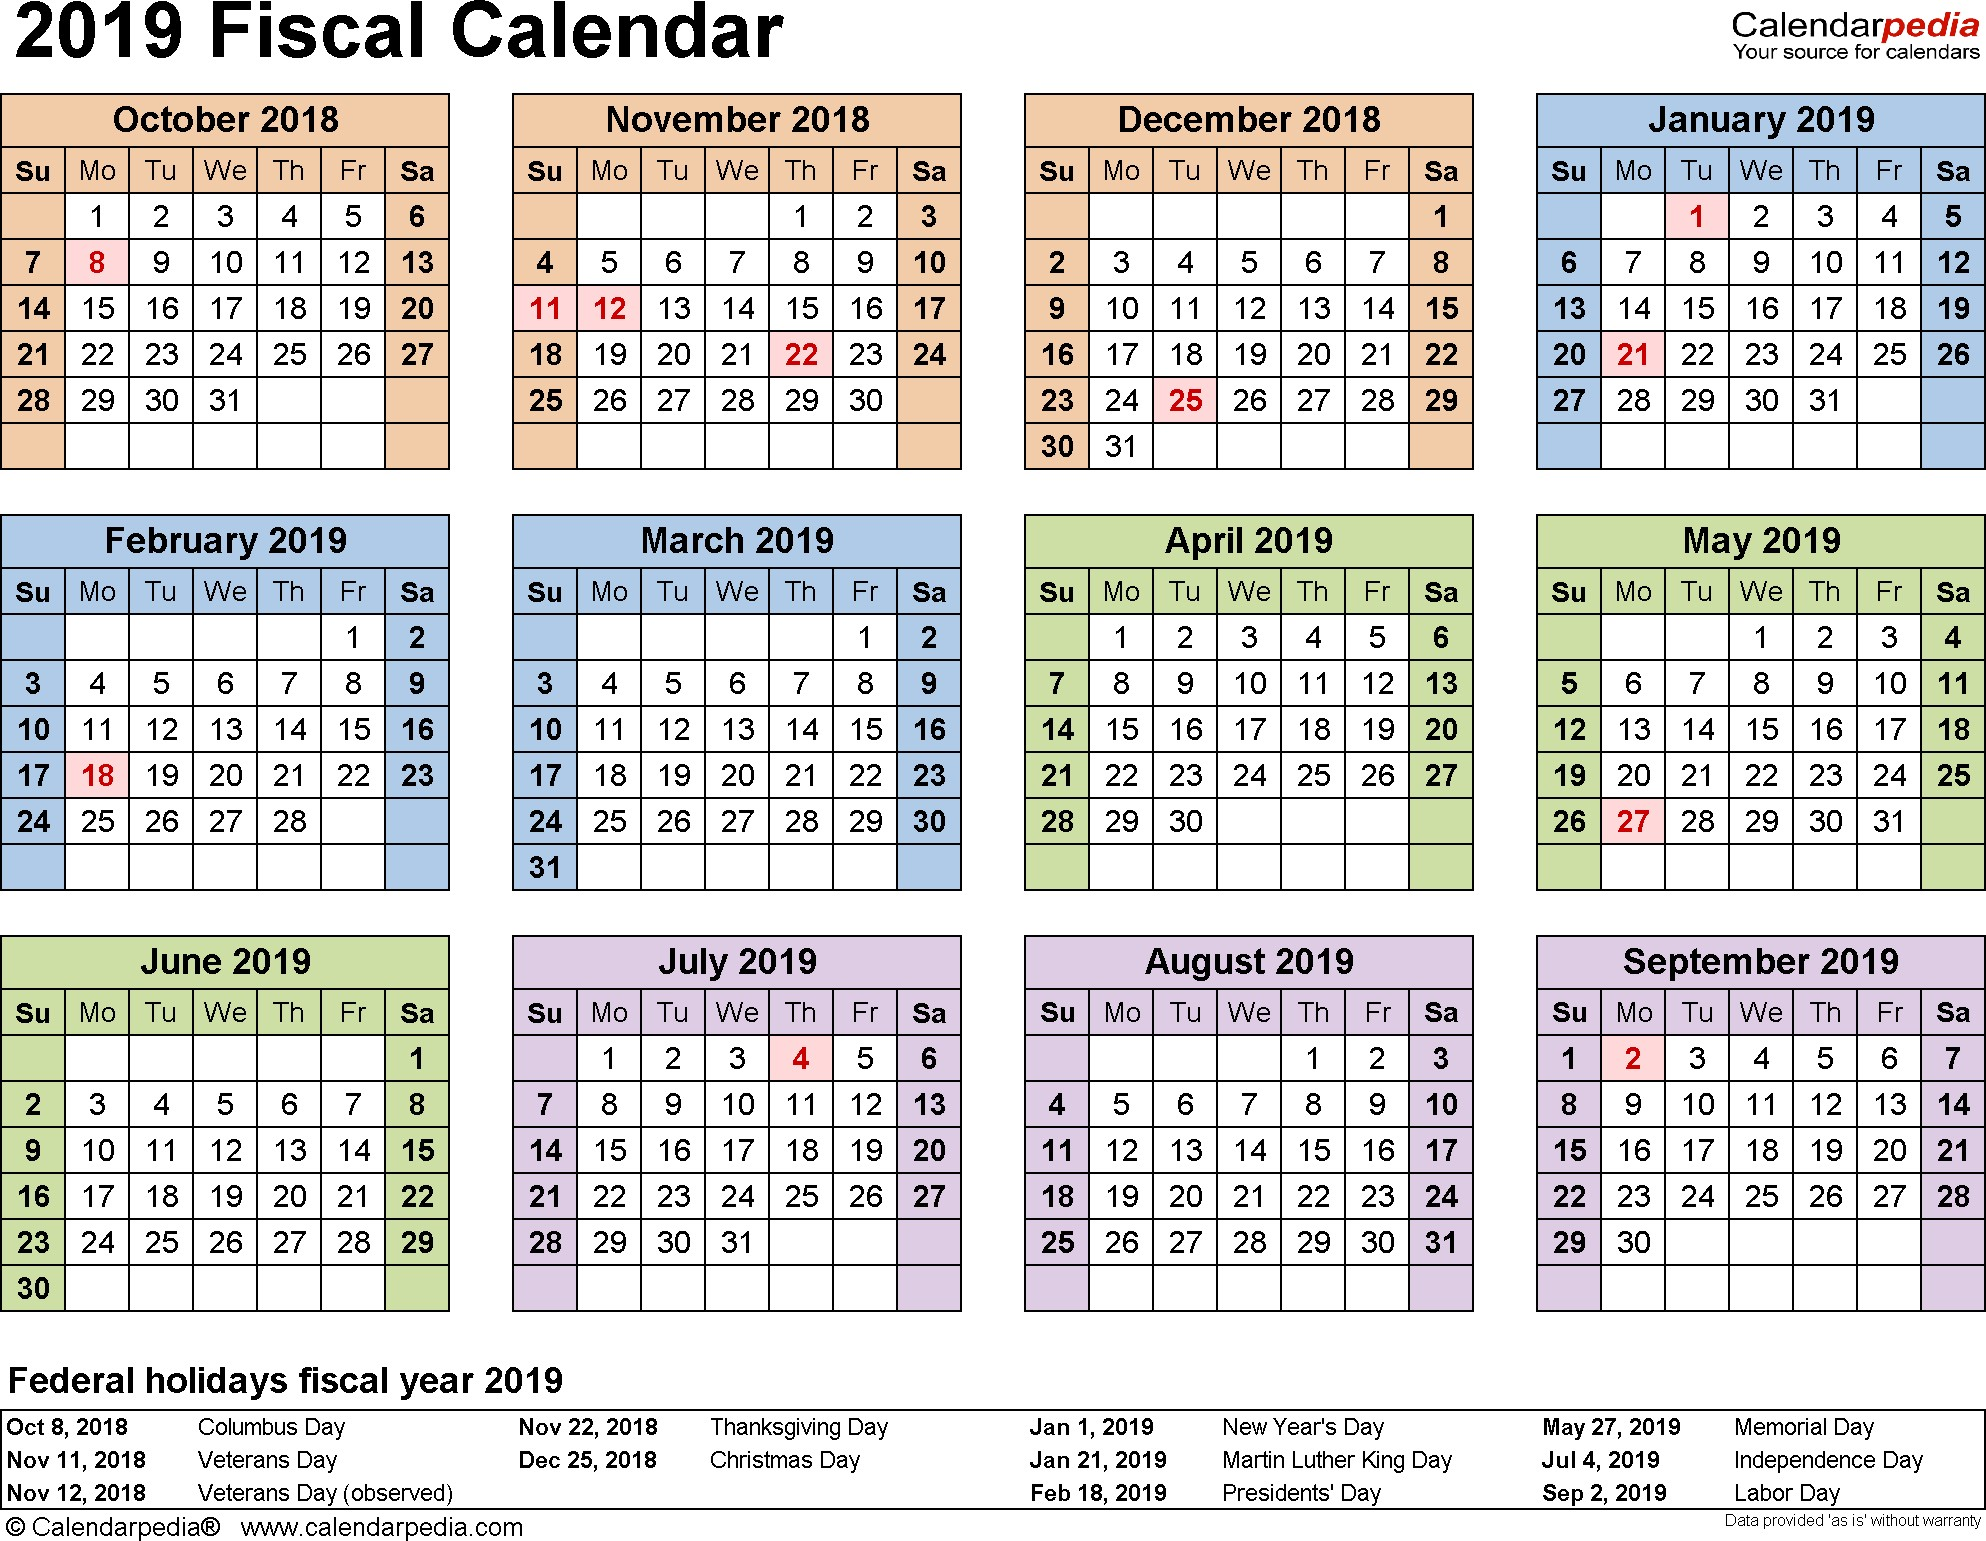 Calendar January to March 2019 Más Caliente Fiscal Calendars 2019 as Free Printable Word Templates Of Calendar January to March 2019 Más Caliente Connellsville area Sd